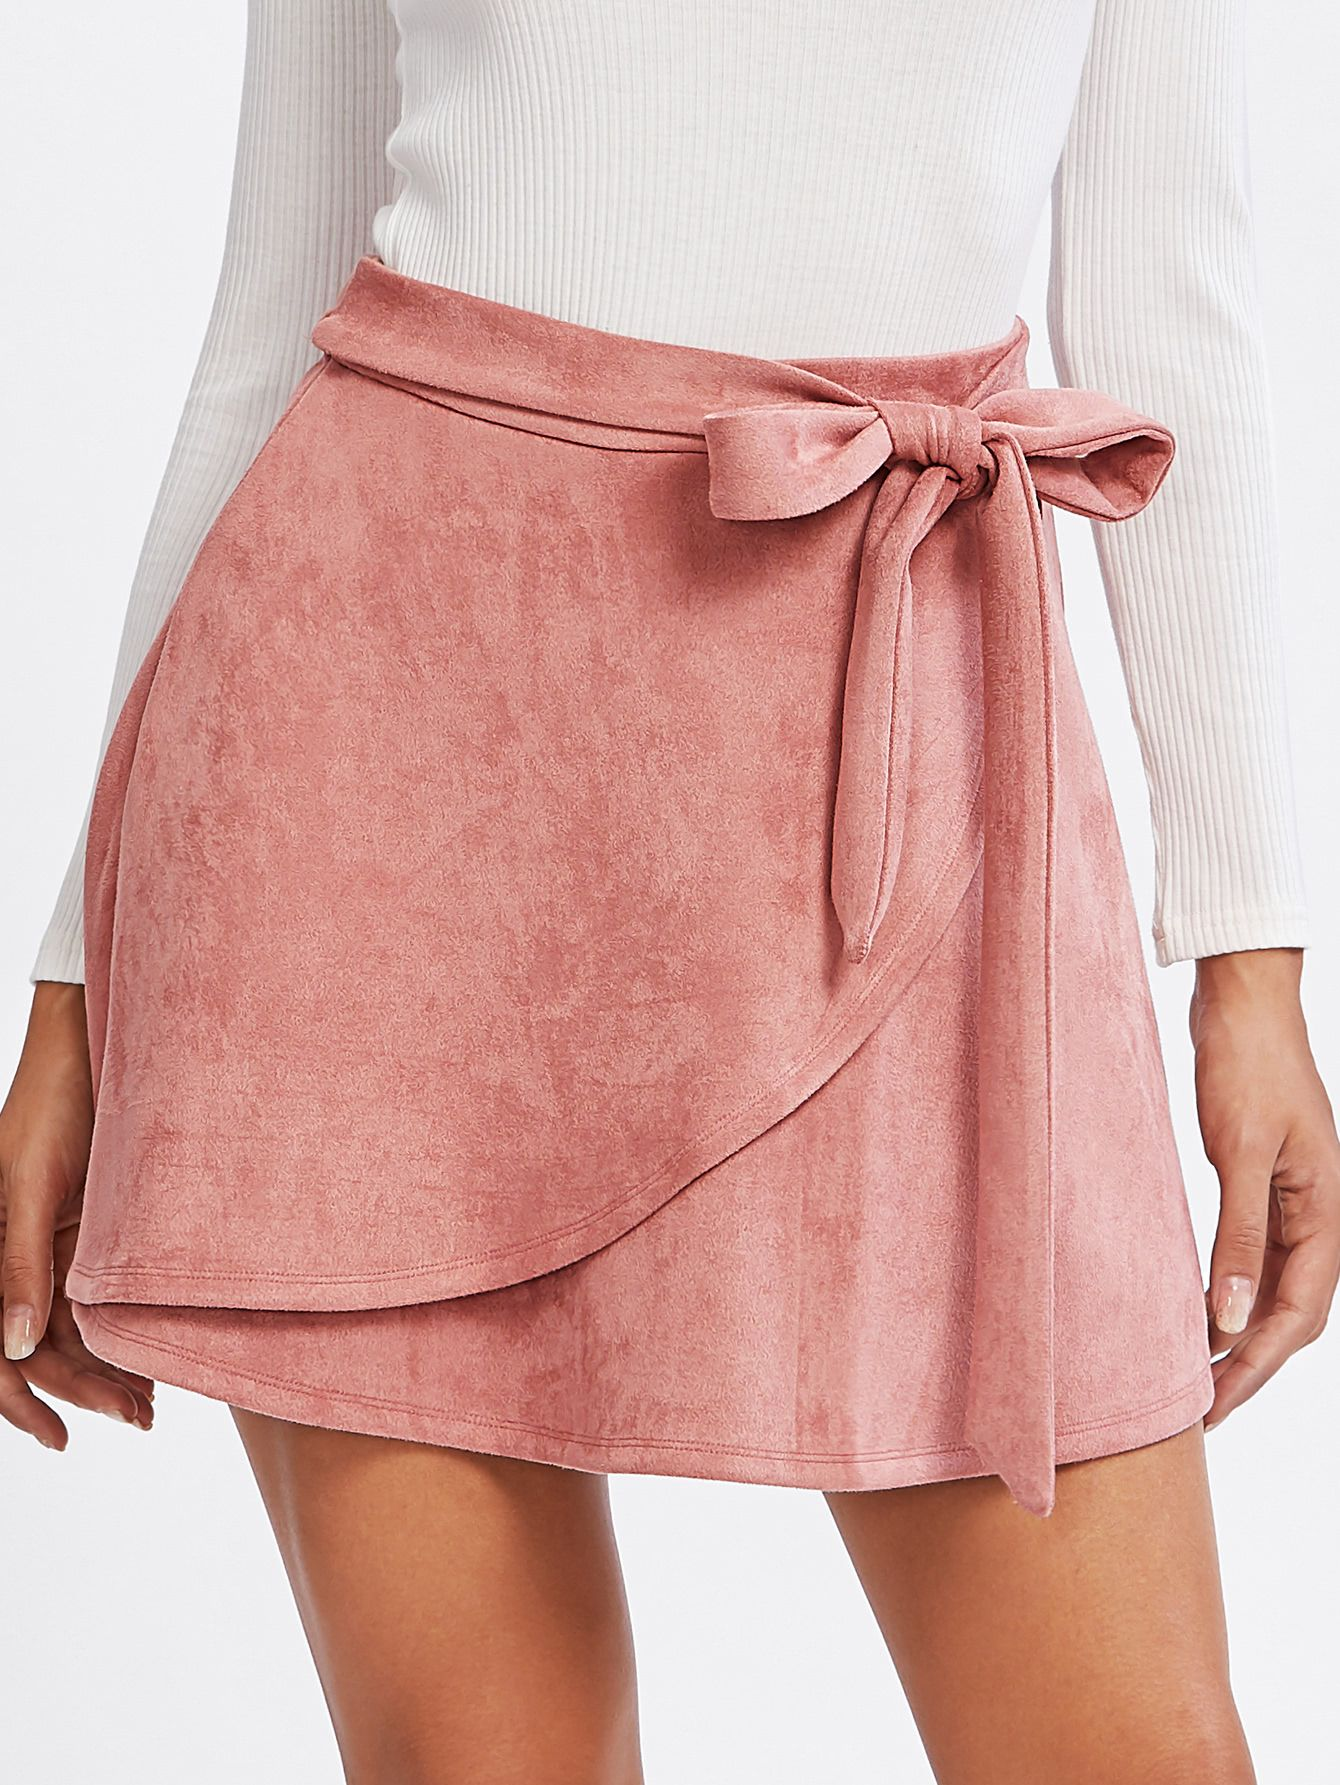 64214aa0b1 Shop Self Belted Suede Staggered Skirt online. SheIn offers Self Belted  Suede Staggered Skirt & more to fit your fashionable needs.